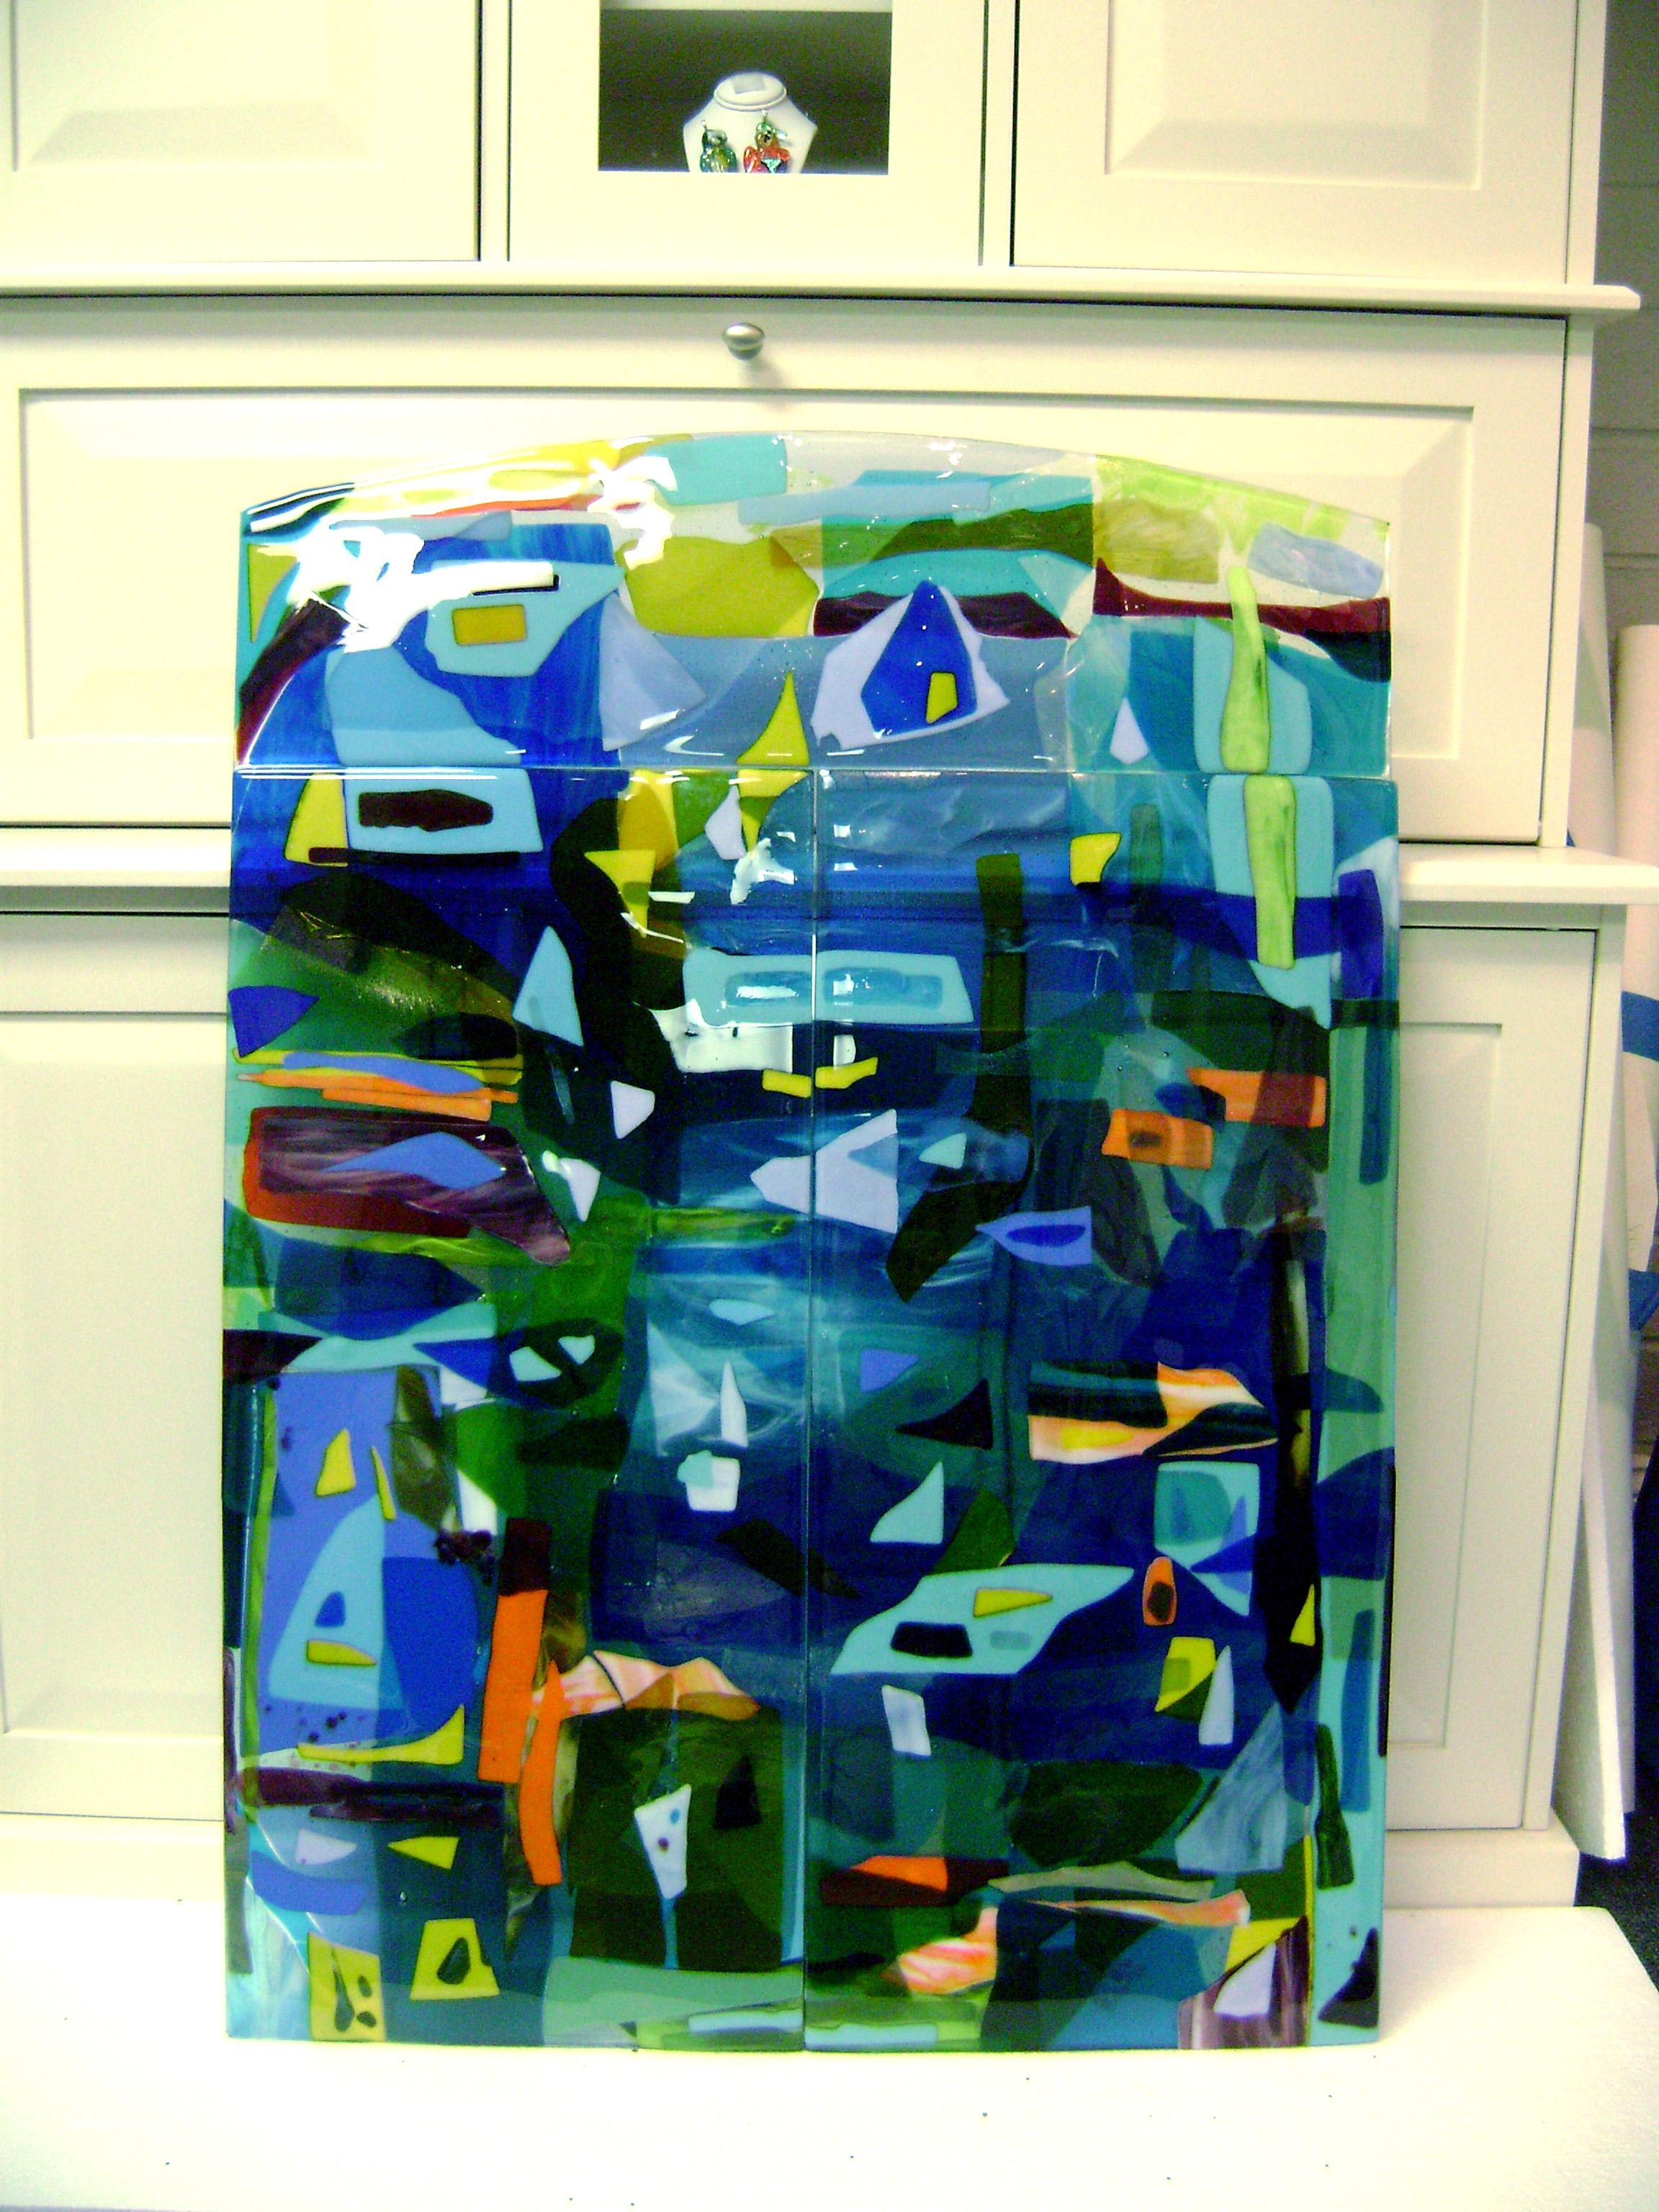 Colorful Fused Glass Wall Art Panel | Designer Glass Mosaics Intended For Large Fused Glass Wall Art (View 8 of 20)